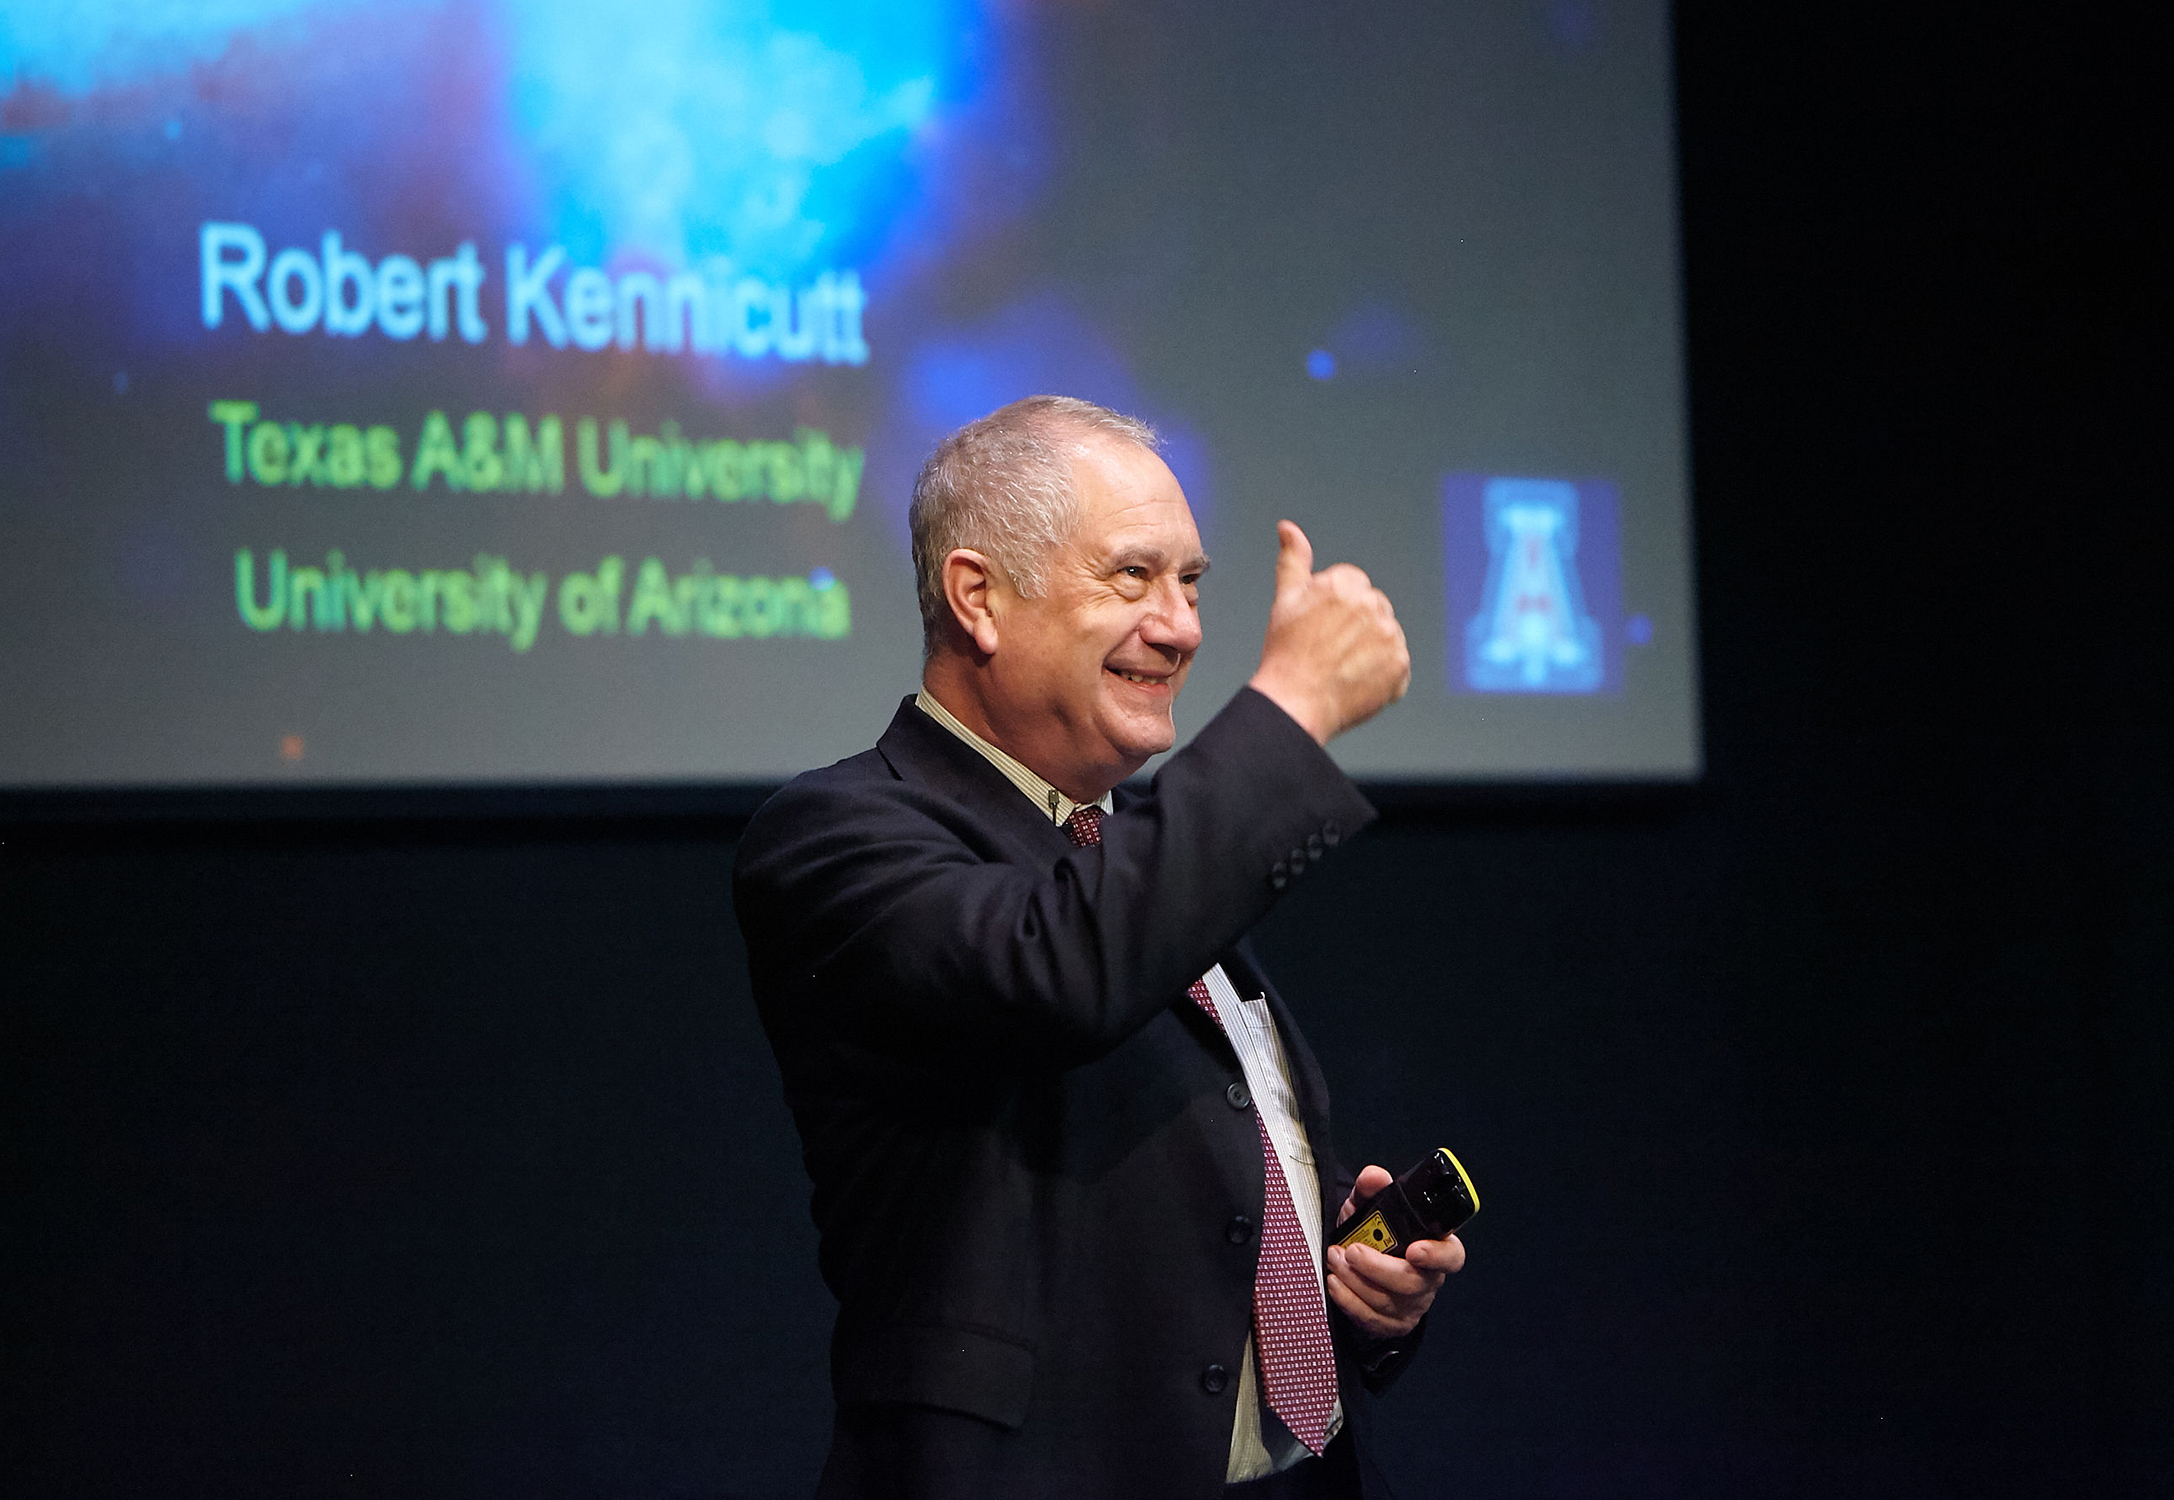 Dr. Robert Kennicutt gives a thumbs up after presenting a HIAS lecture